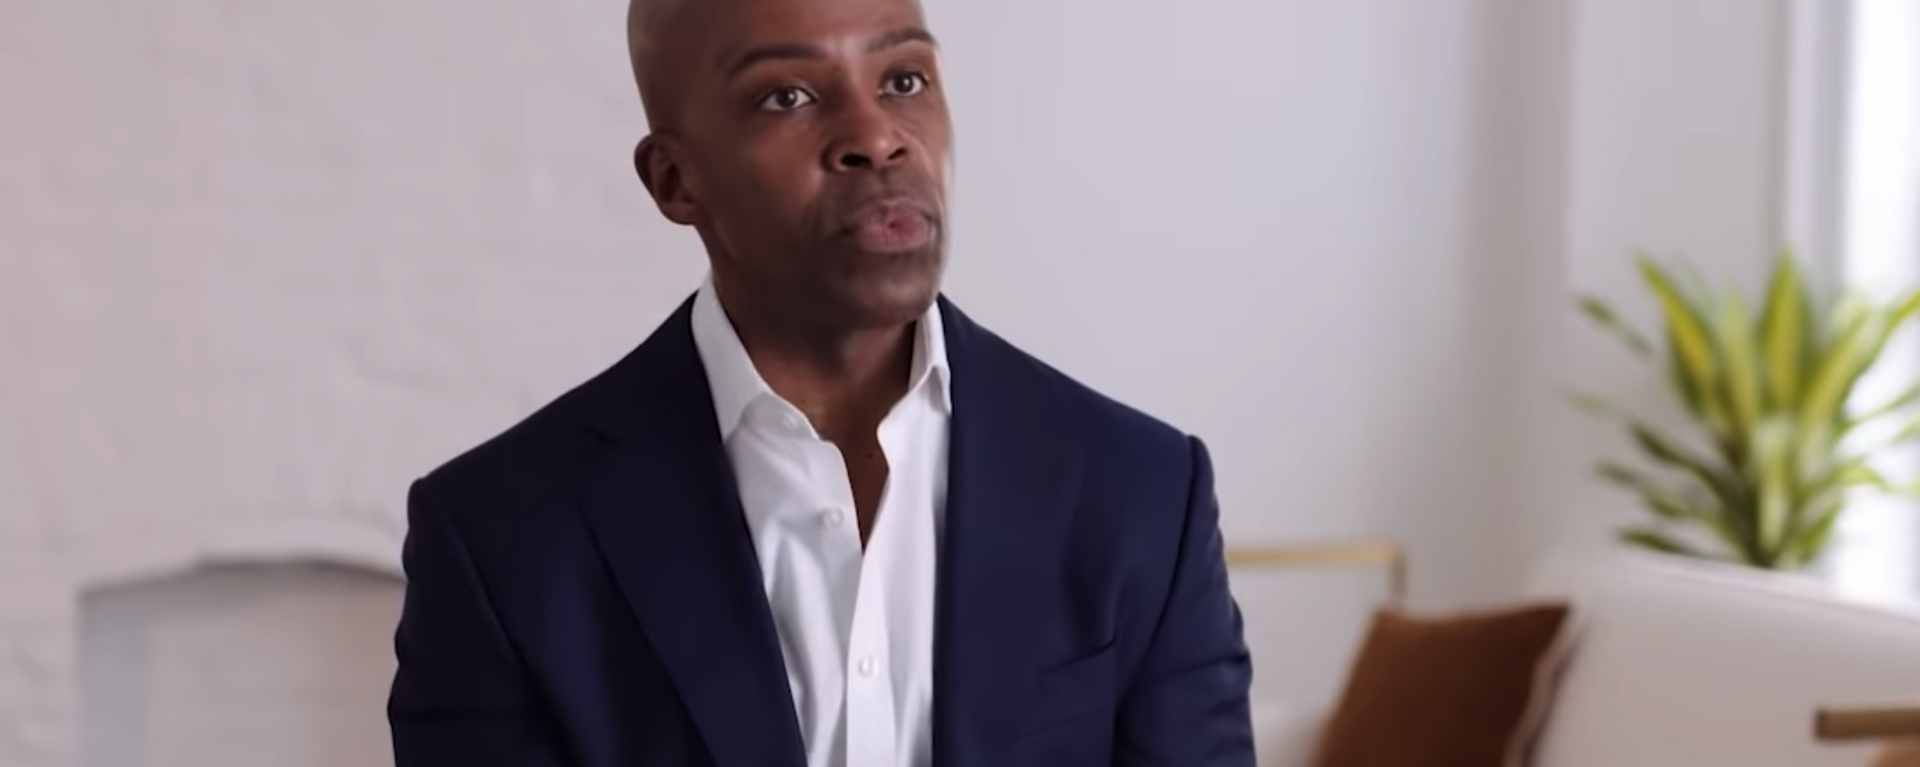 Screenshot captures image of Human Rights Campaign President Alphonso David, who was recently enveloped in the Andrew Cuomo scandal after being named in the independent sexual harassment report. - Sputnik International, 1920, 06.09.2021